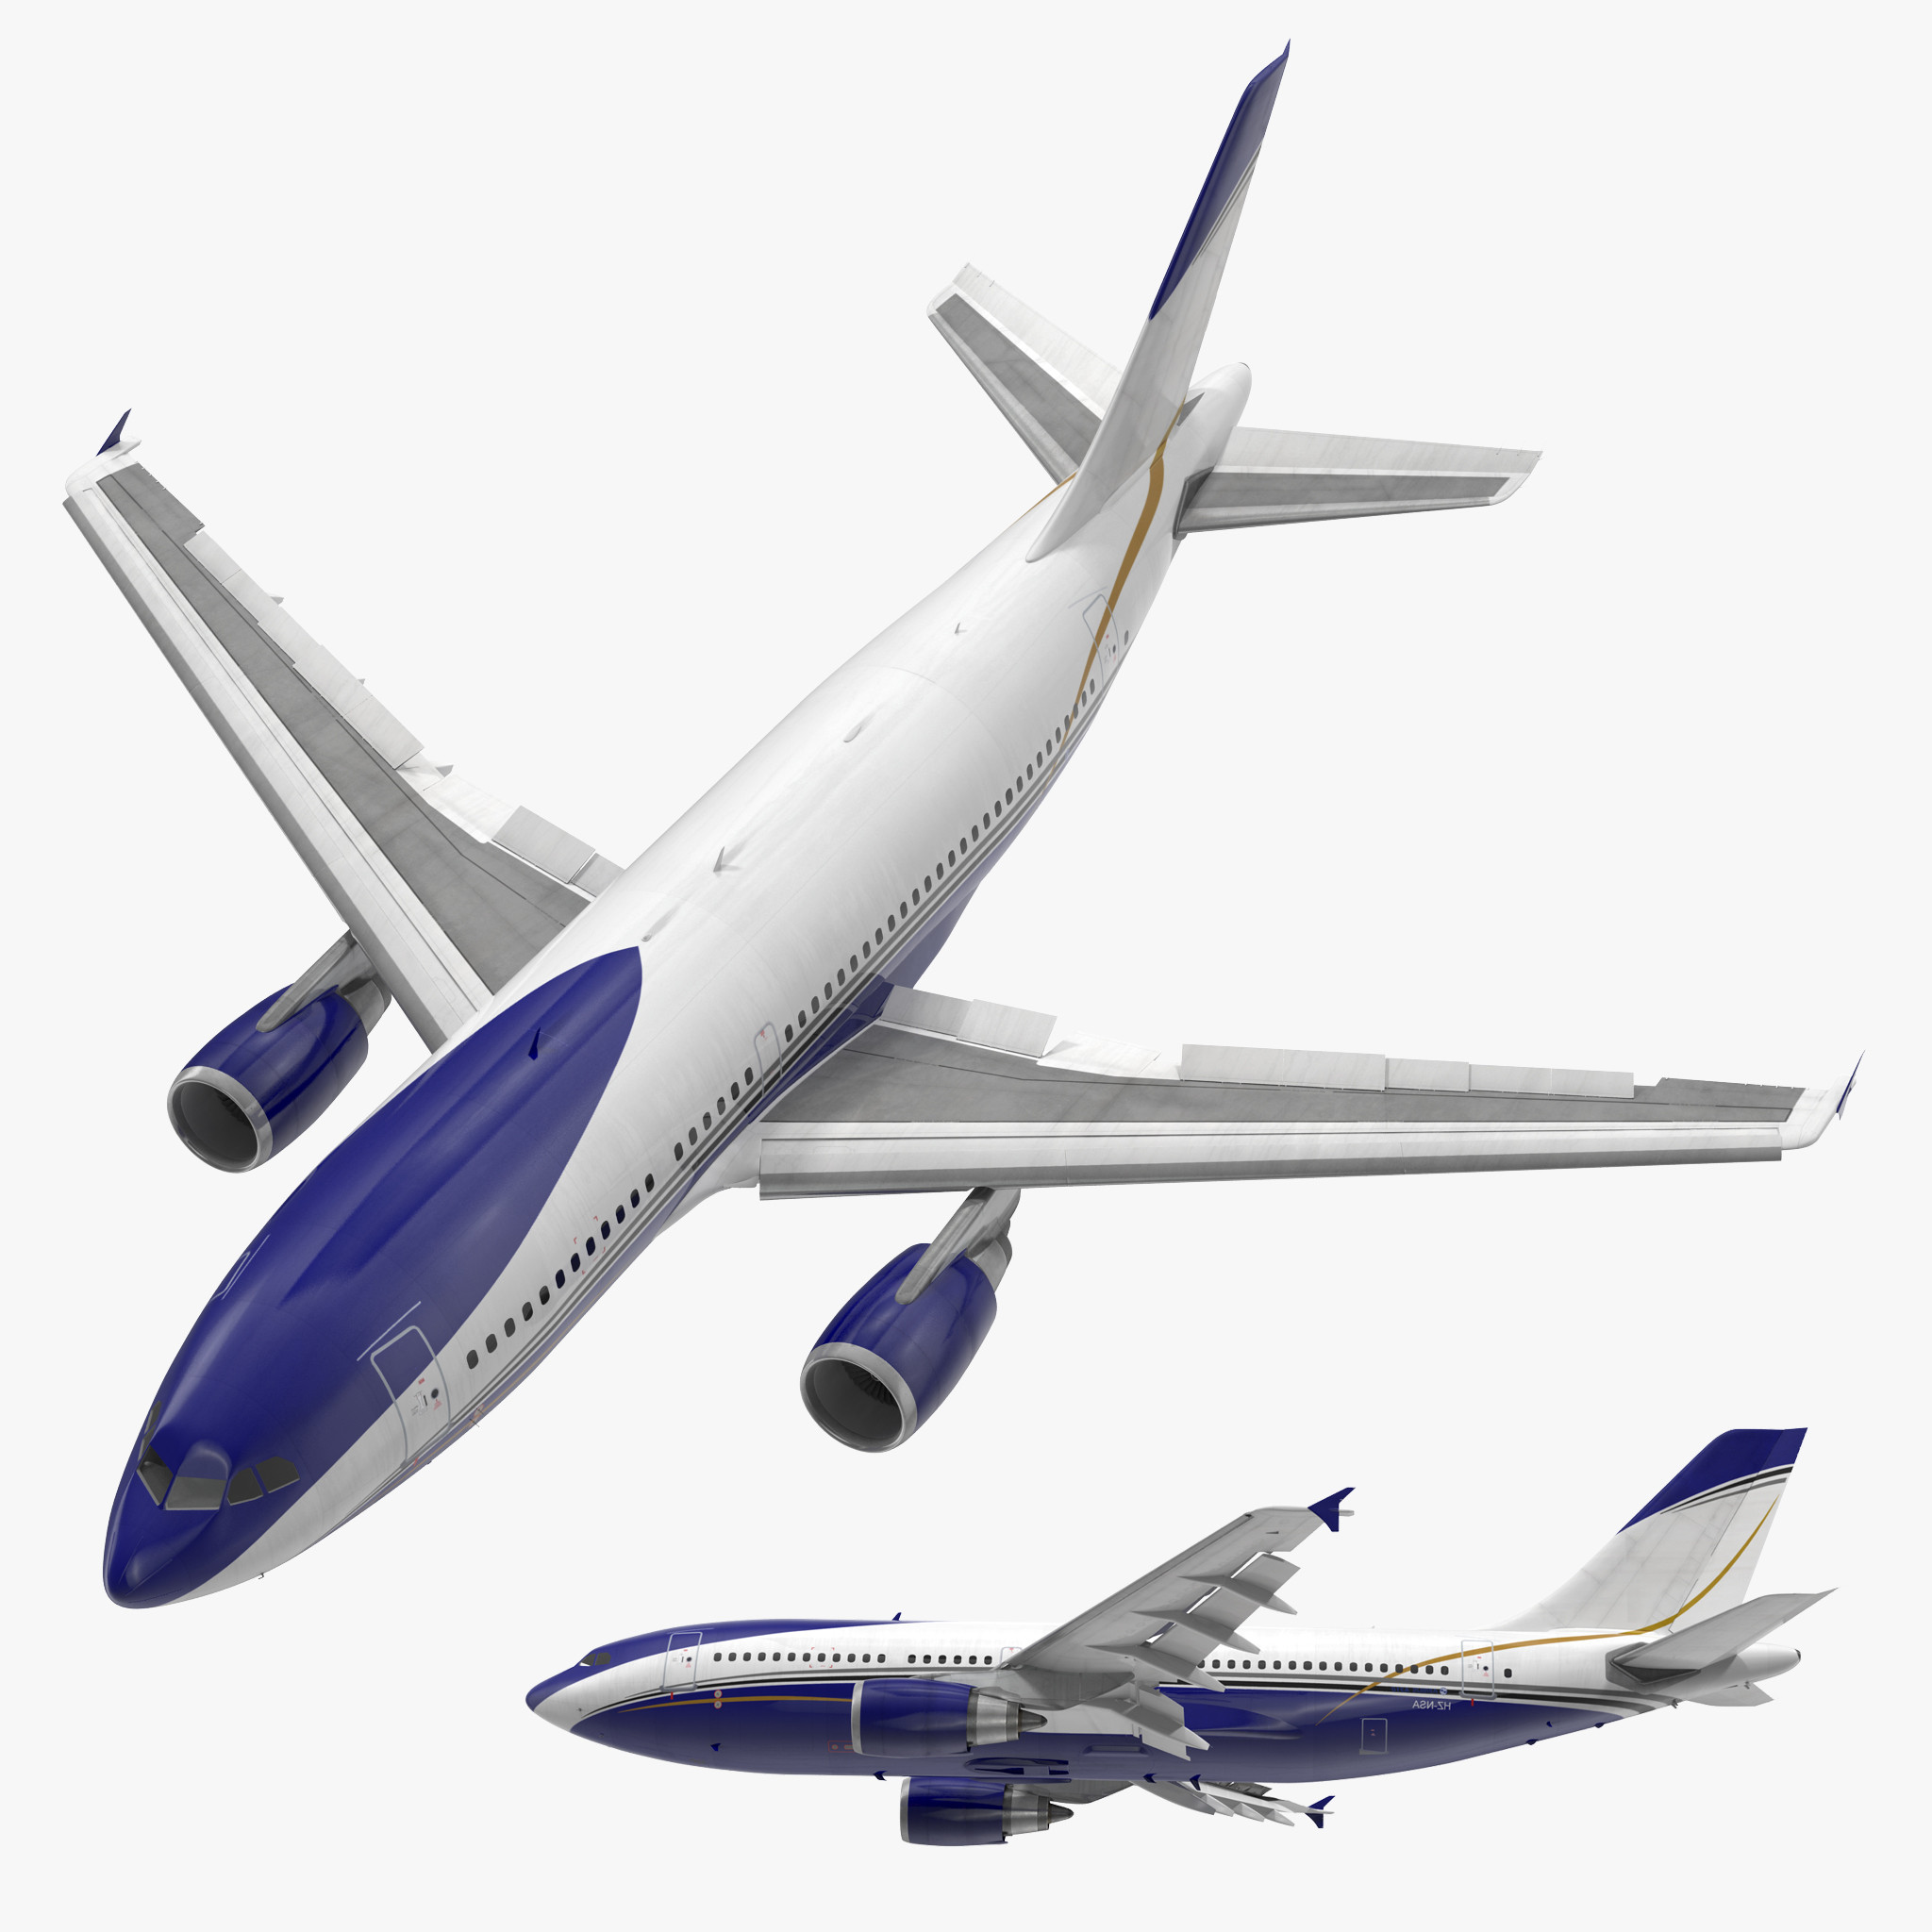 Airbus-A310-300-Rigged-vray-3d-model-000.jpg